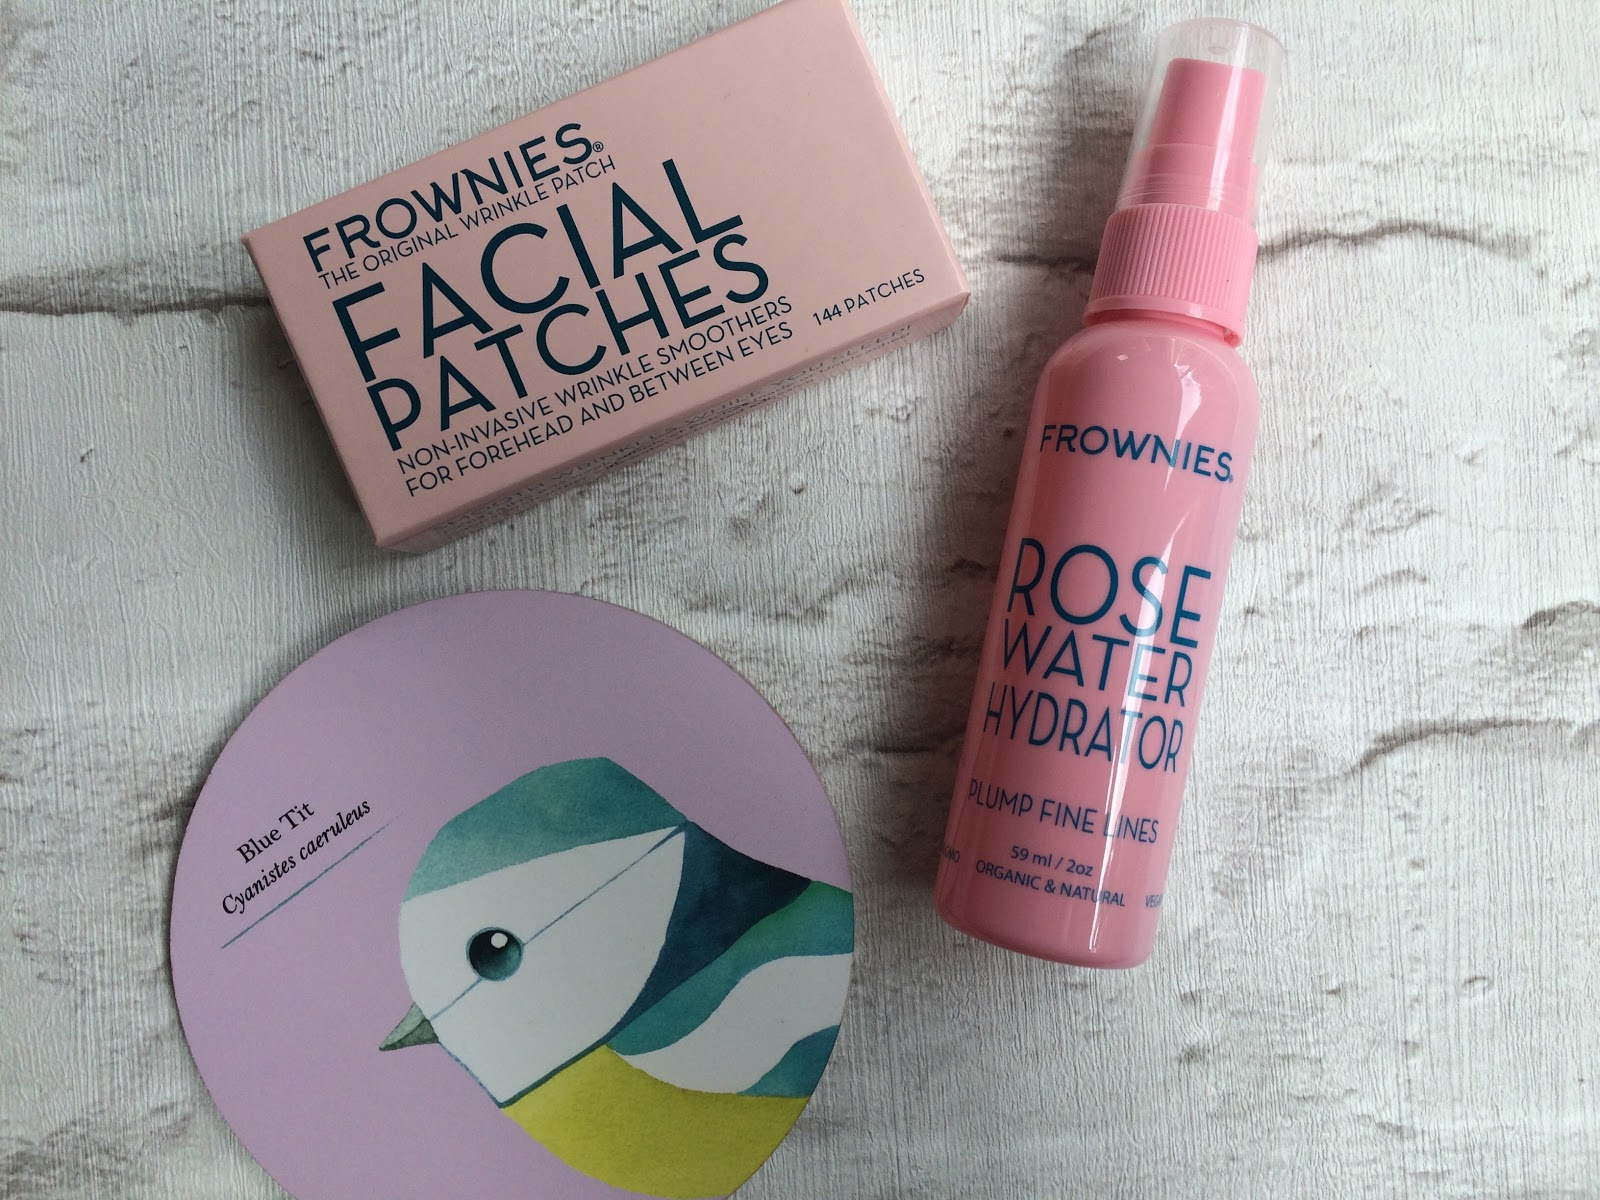 Frownies Facial patches, forehead and between the eyes and rose water hydrator